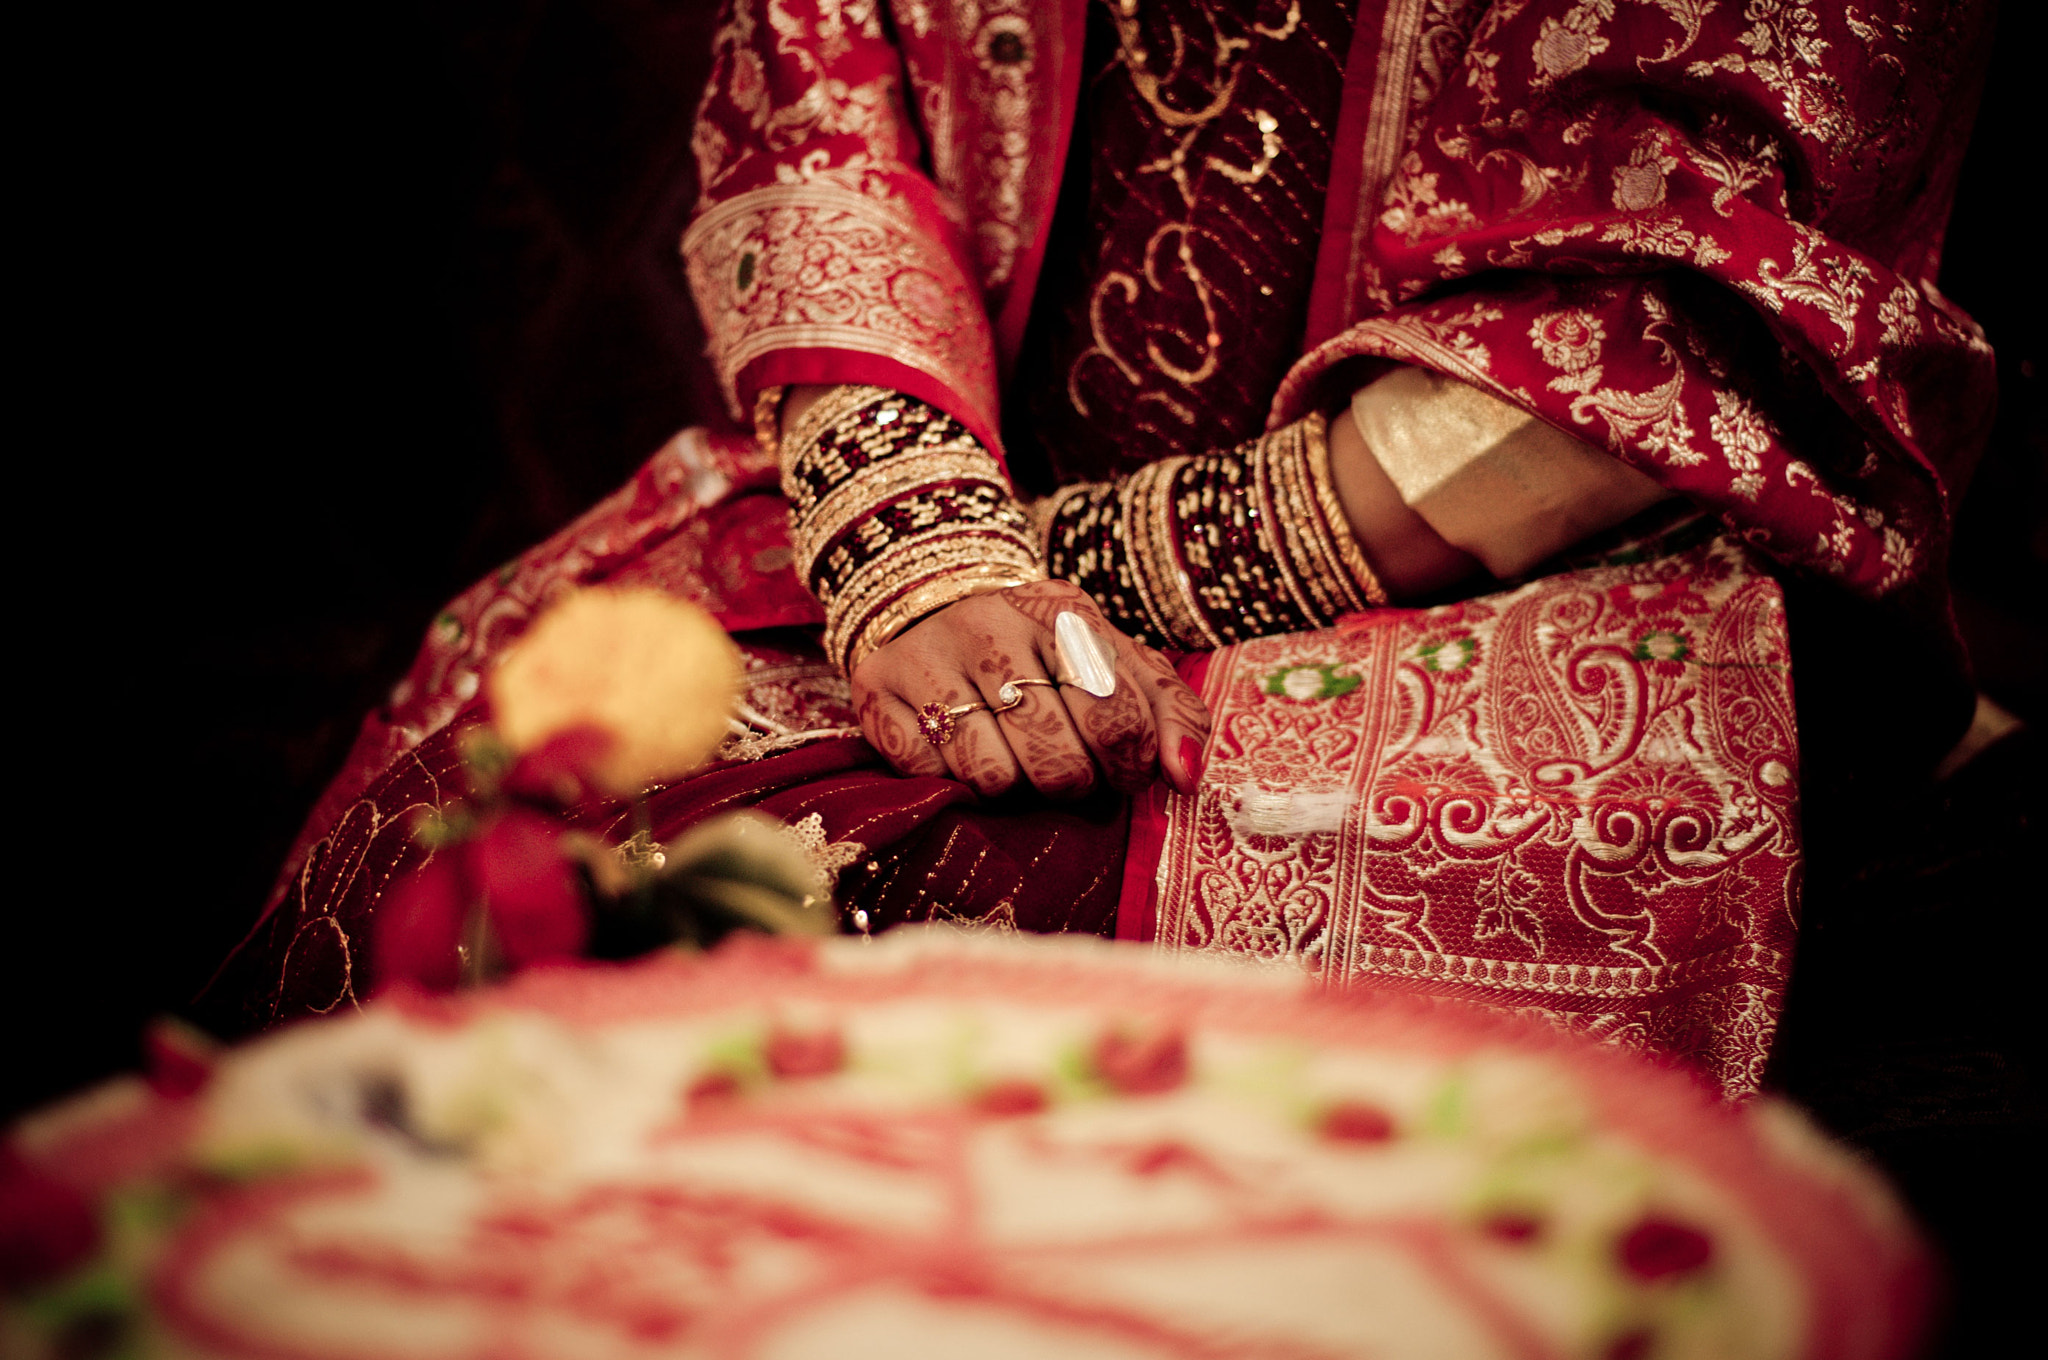 Photograph The Bride by Suraj Shakya on 500px